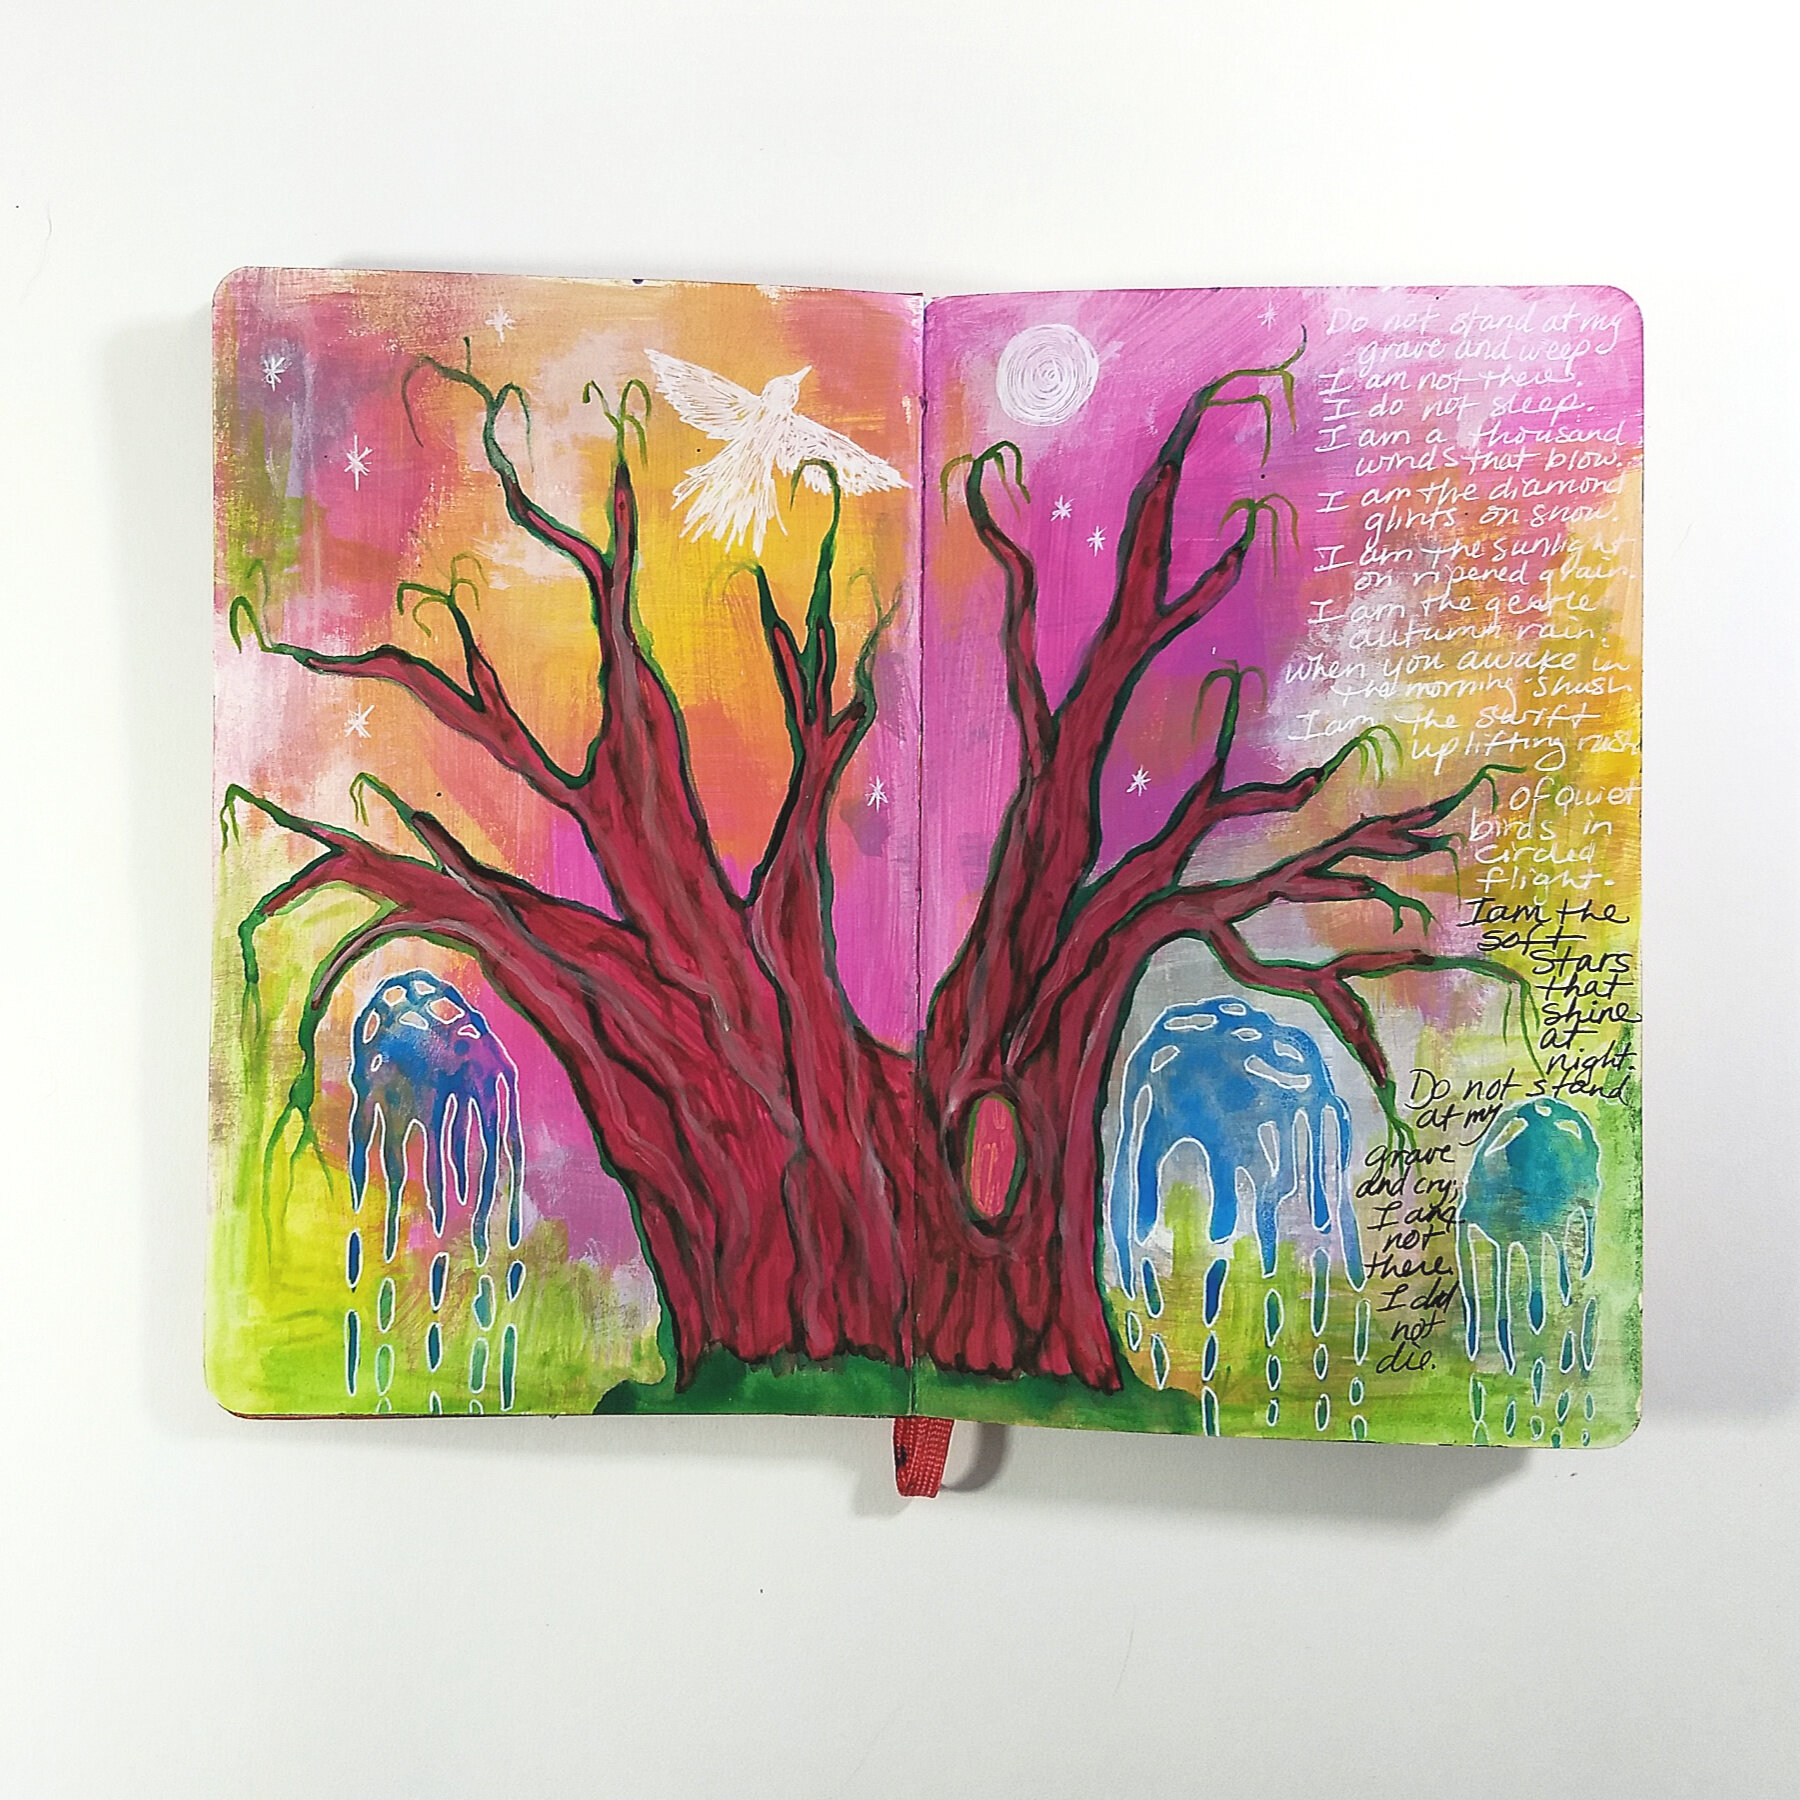 art journal page, holiday grief, how to keep a creative practice during the holidays with Hali Karla